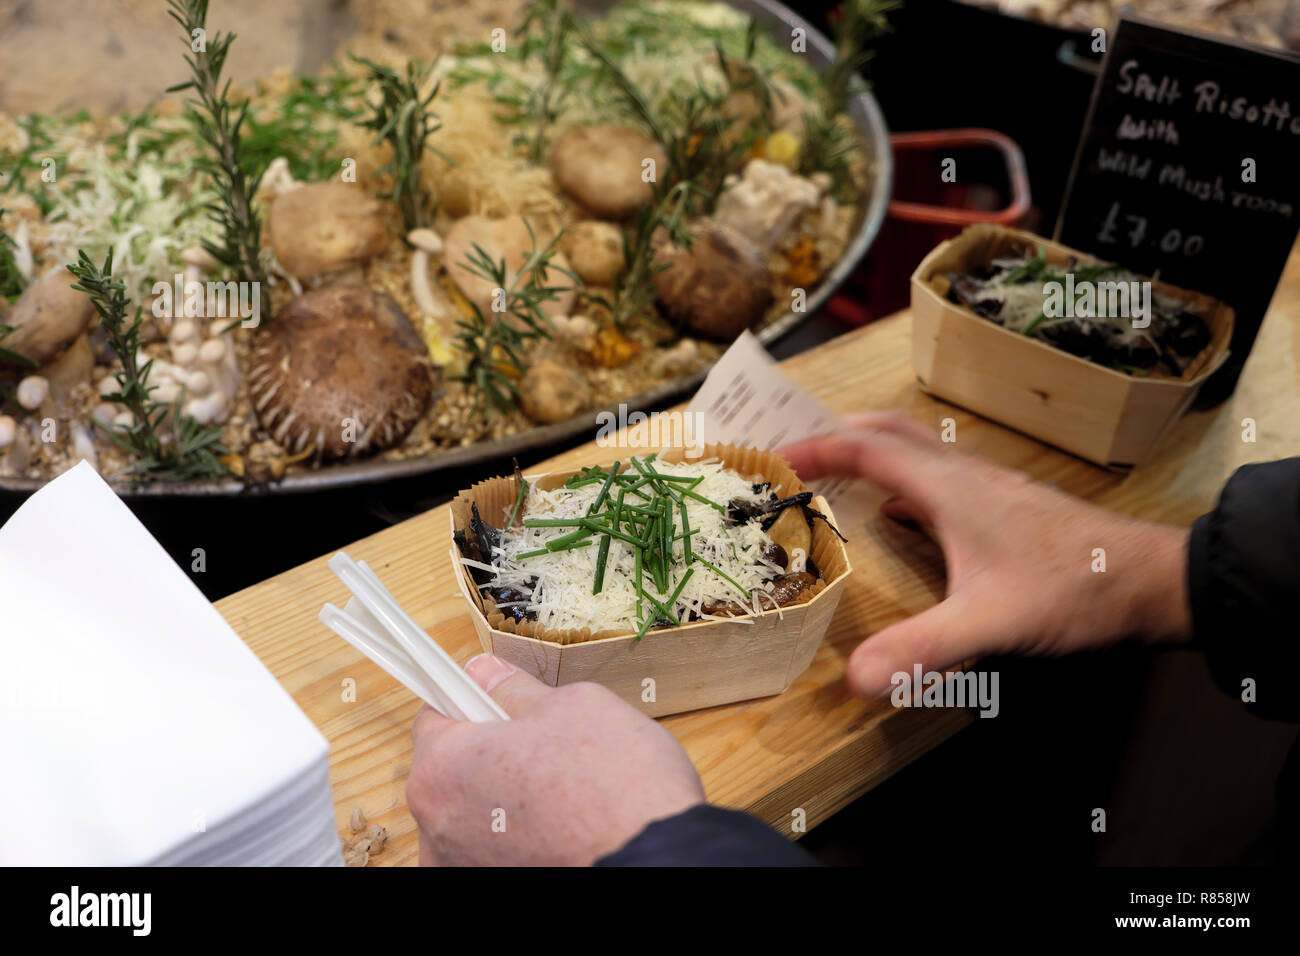 A person customer buying wild mushroom spelt risotto at a Borough Market Christmas food stall in Southwark, South London England UK  KATHY DEWITT Stock Photo